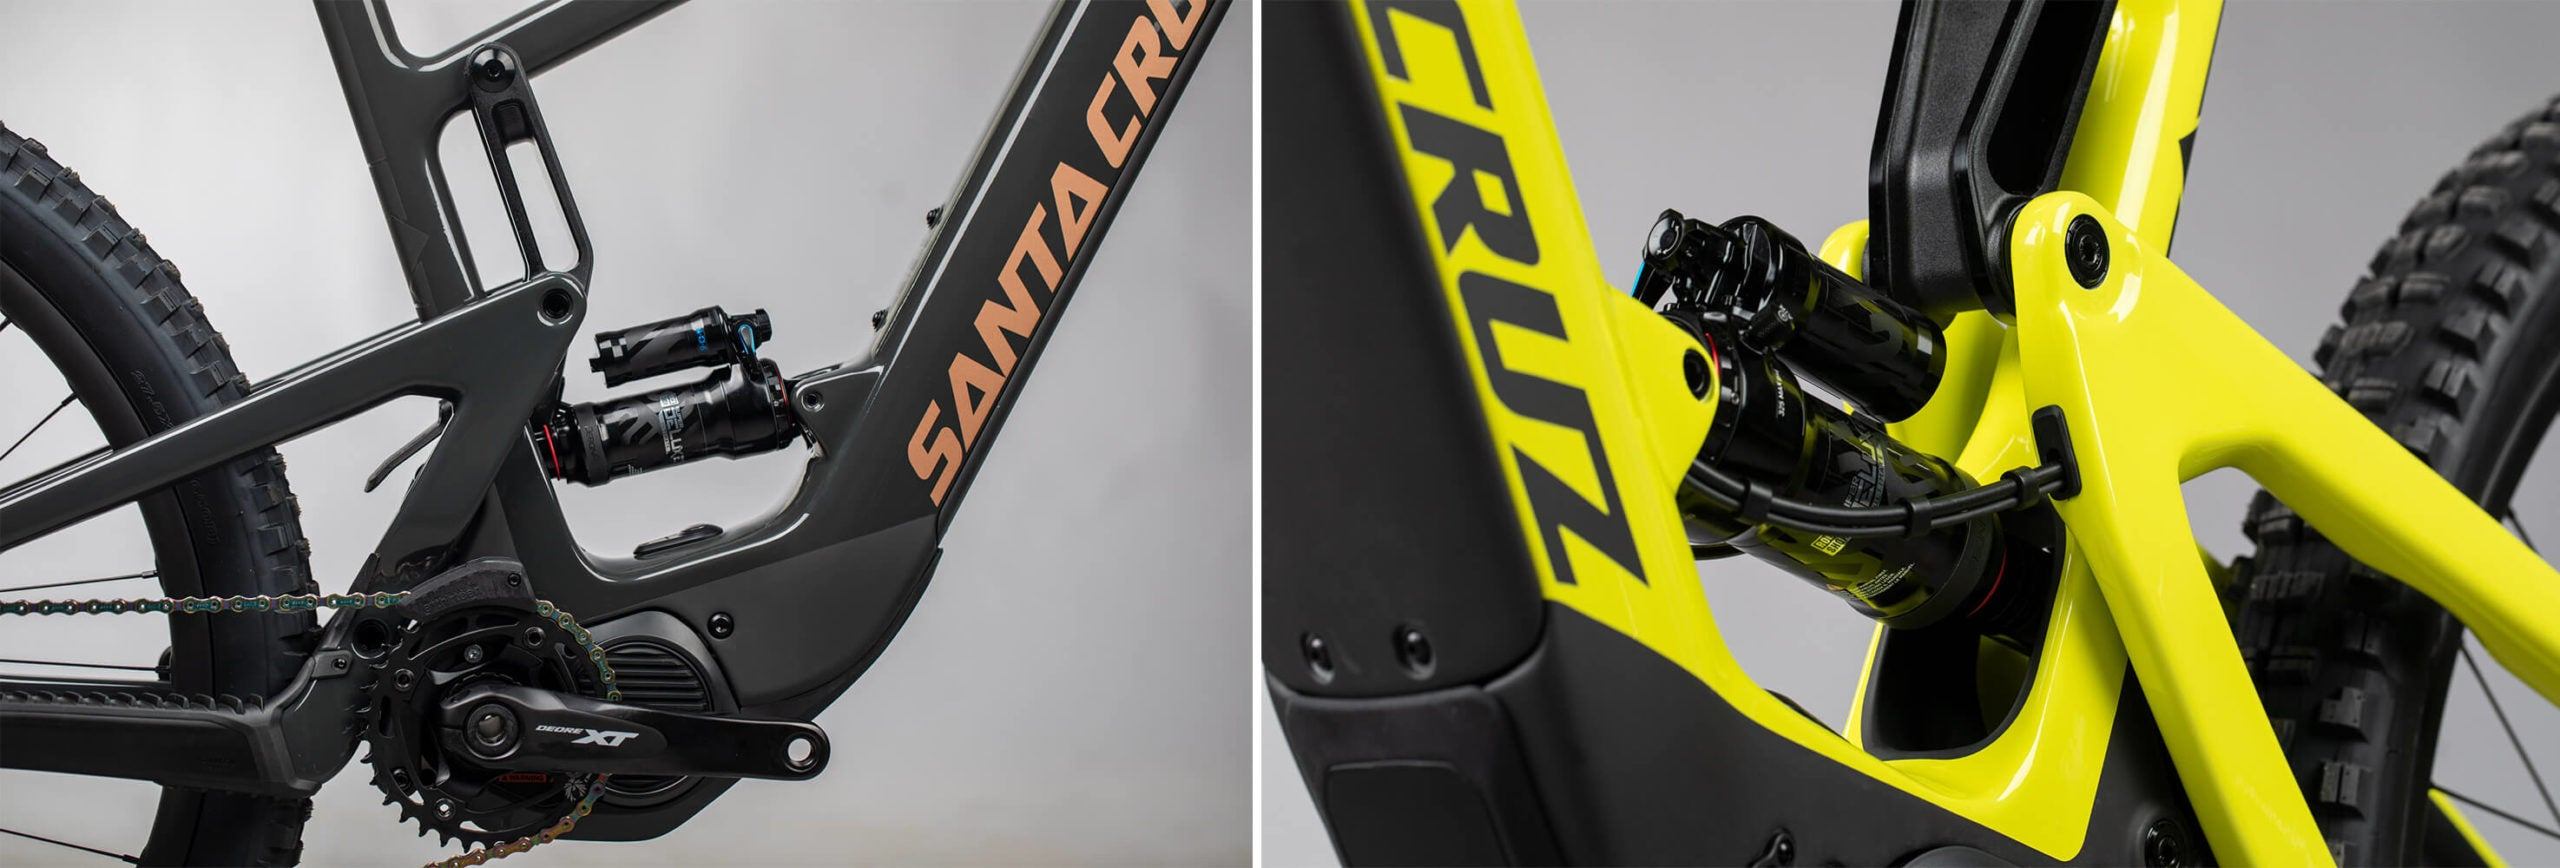 2020 Santa Cruz Heckler E-MTB VPP Suspension - Contender Bicycles